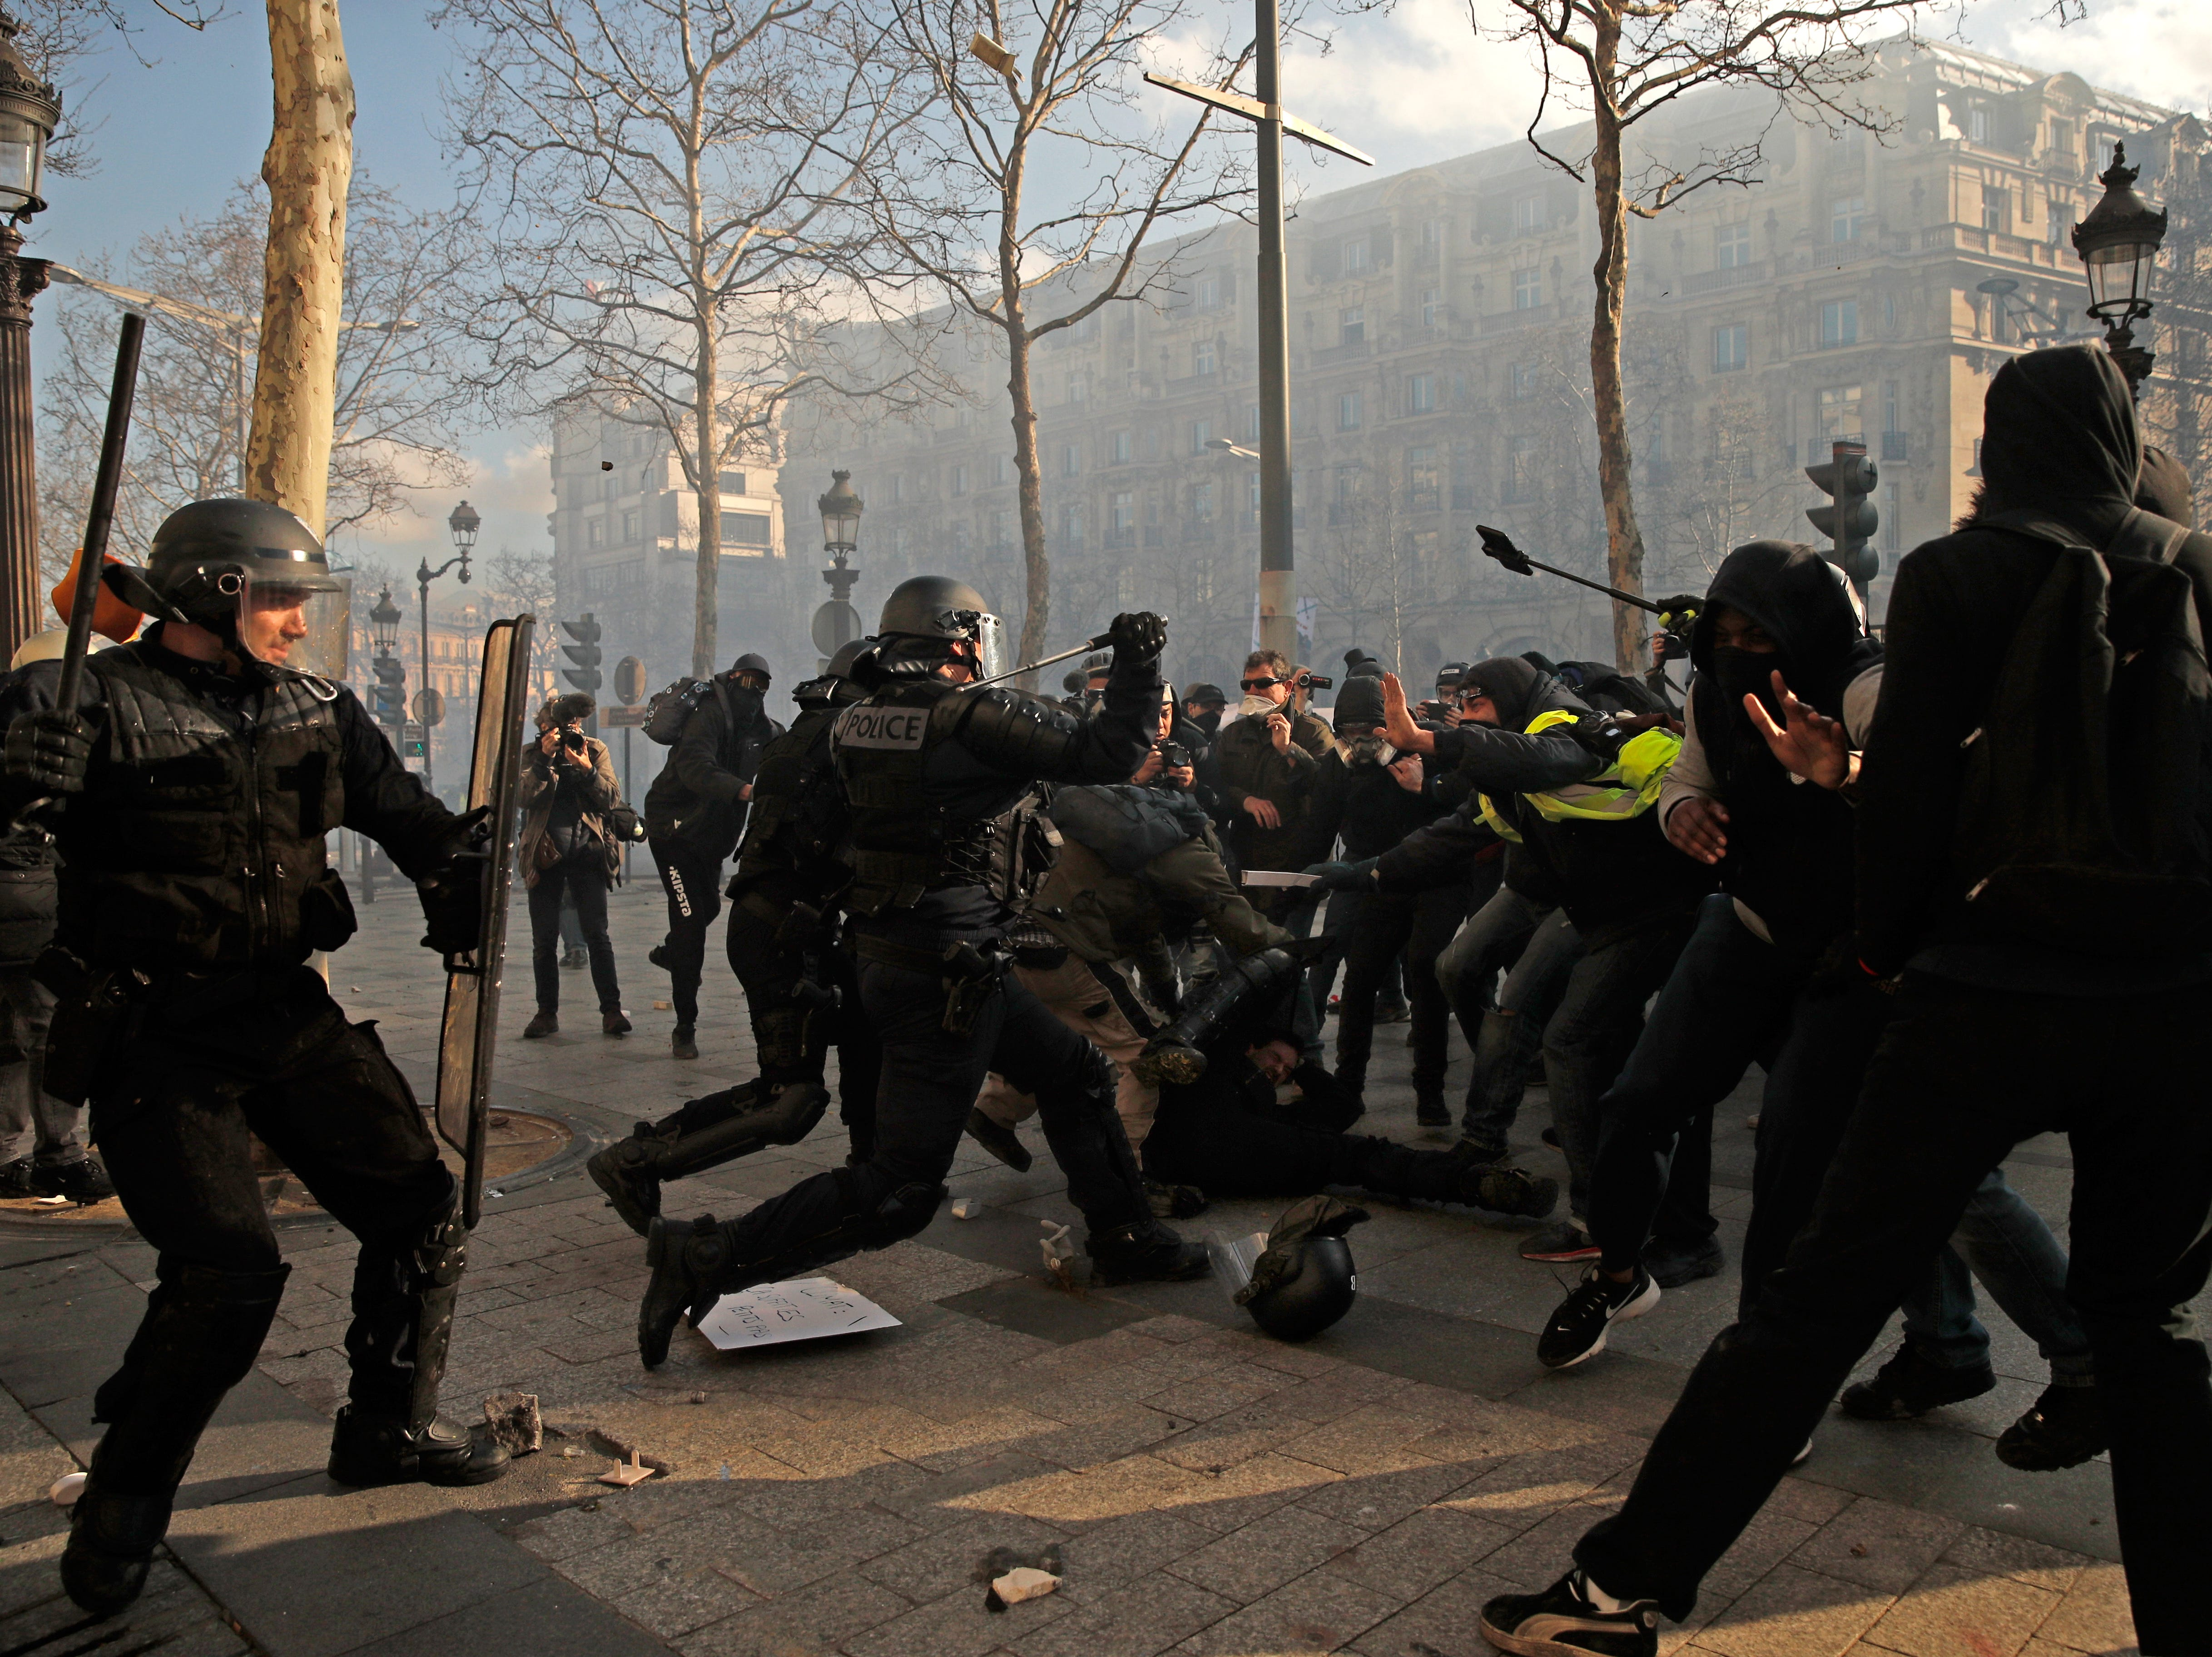 Yellow Vests protesters hit a riot police officer on the Champs Elysees during the 'Act XVIII' demonstration in Paris, France, 16 March 2019.